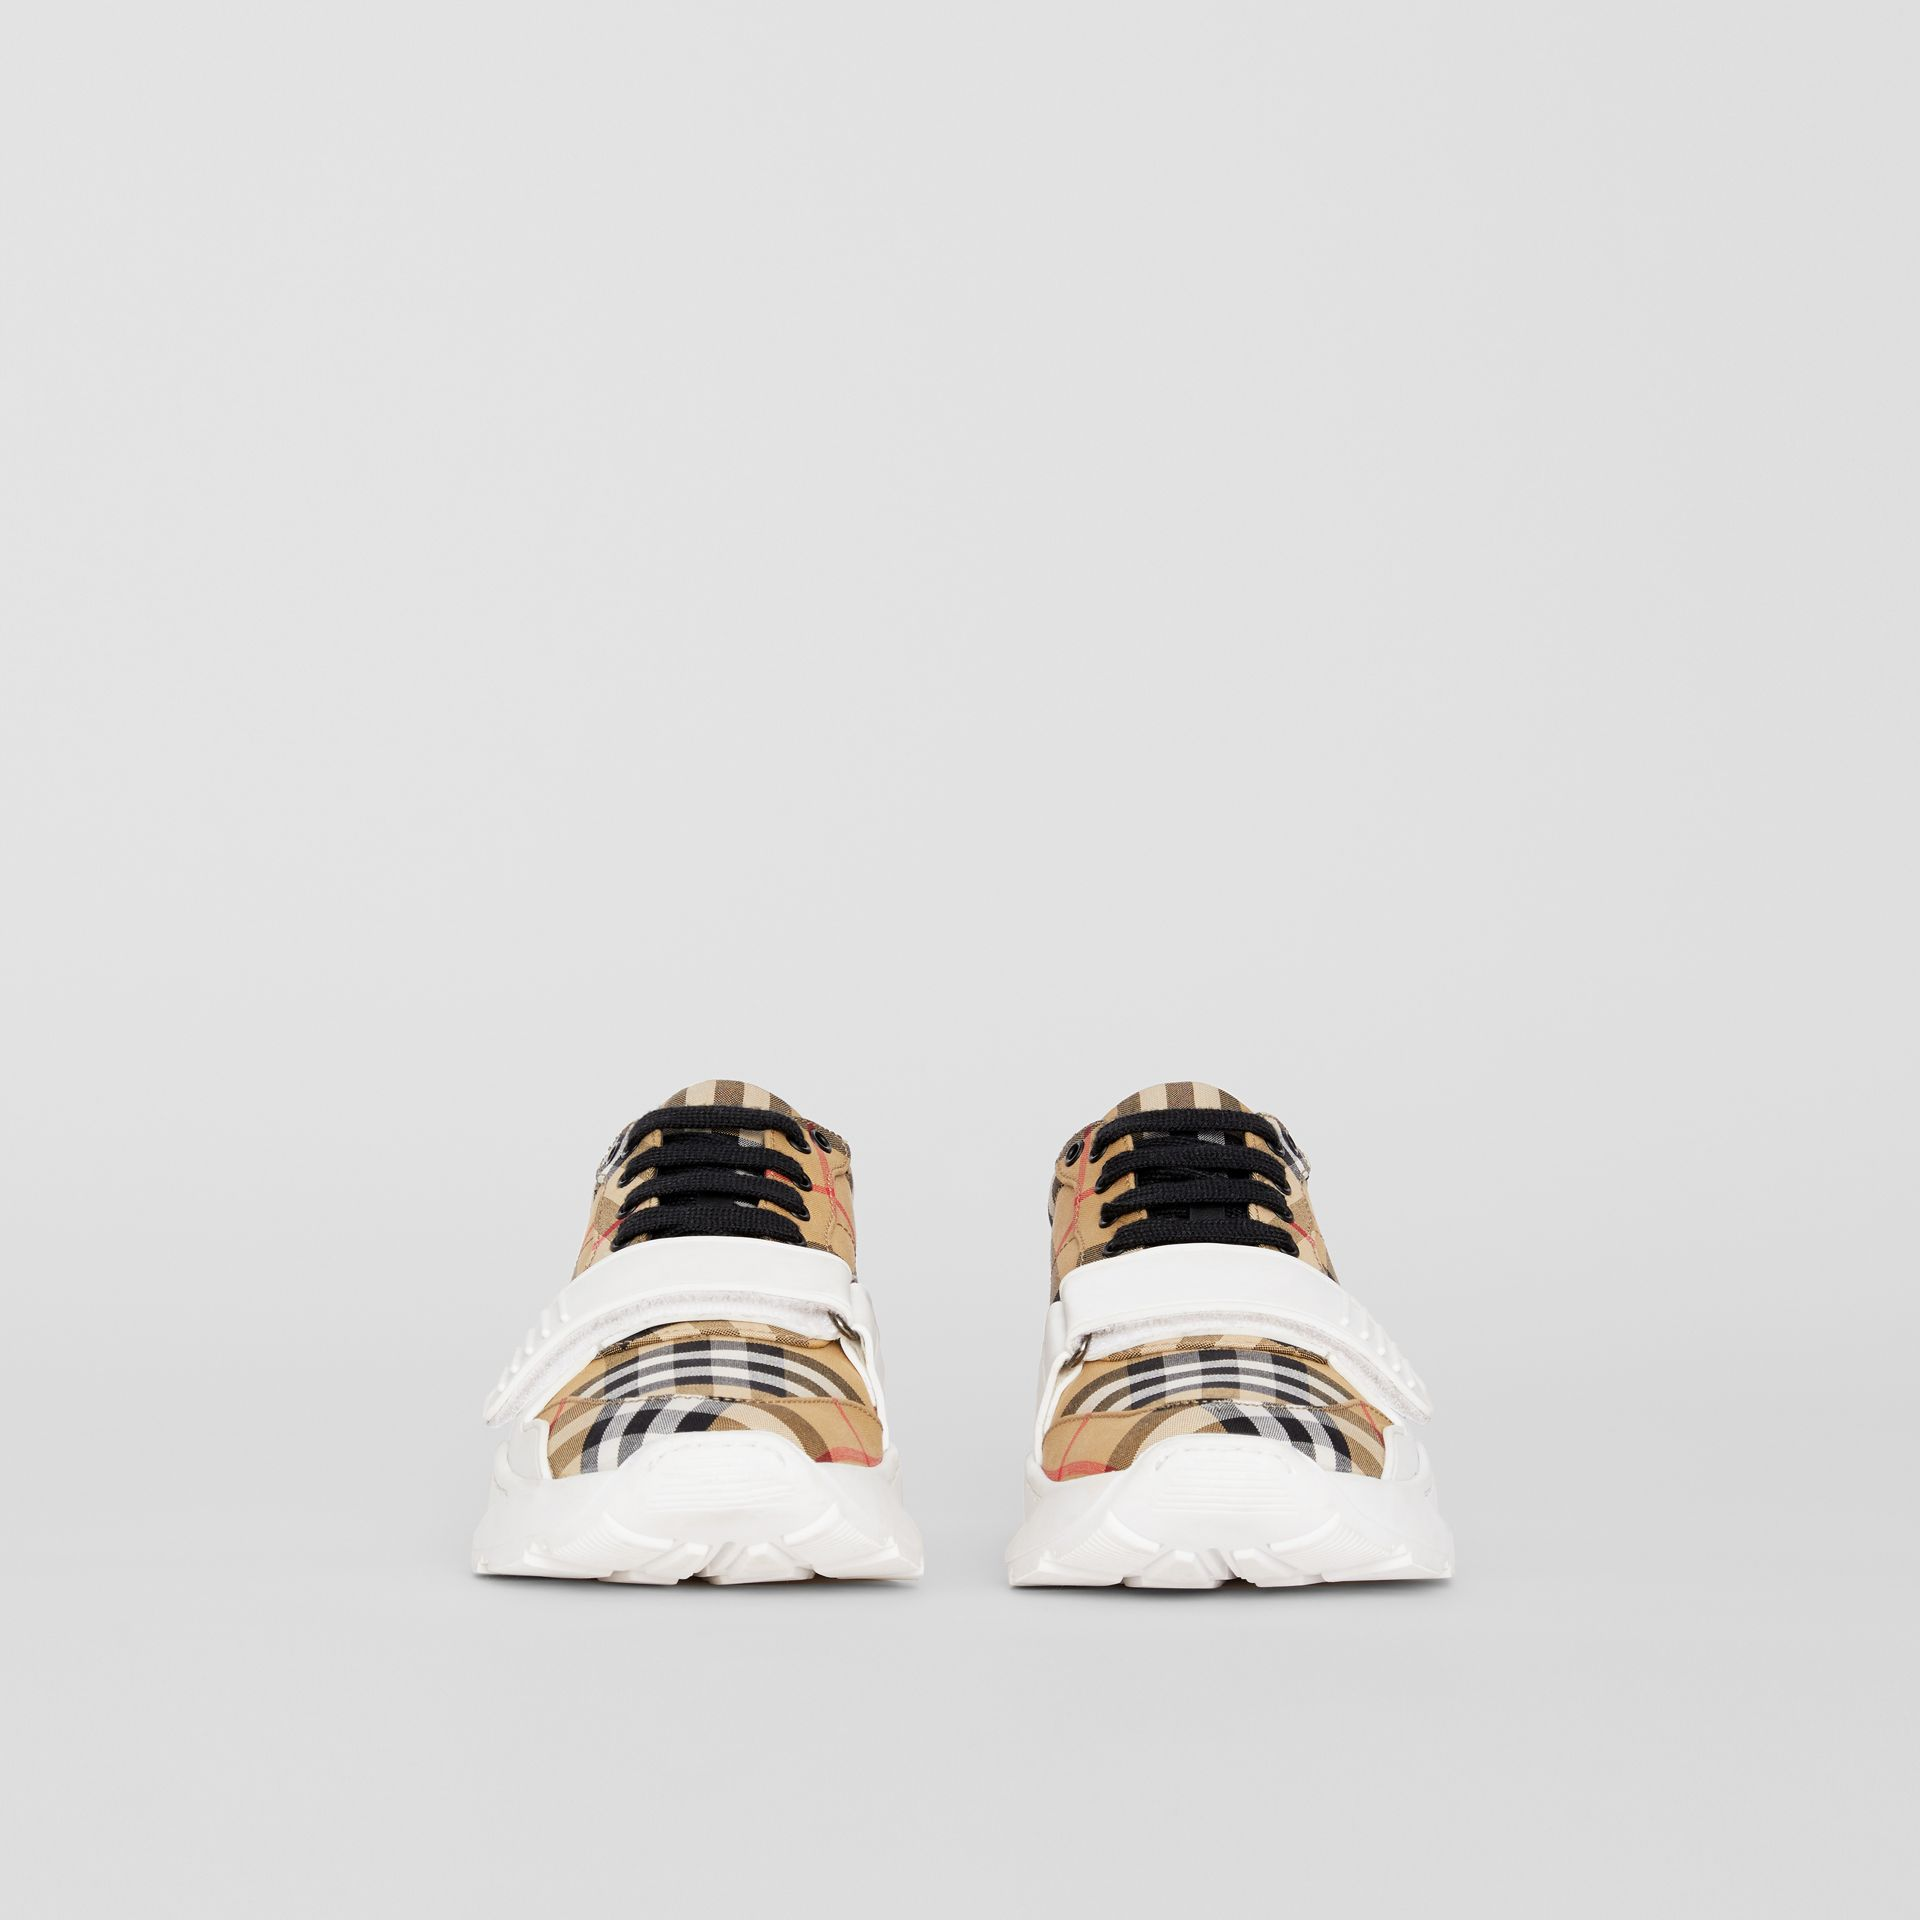 Sneakers en coton Vintage check (Jaune Antique) - Femme | Burberry Canada - photo de la galerie 3